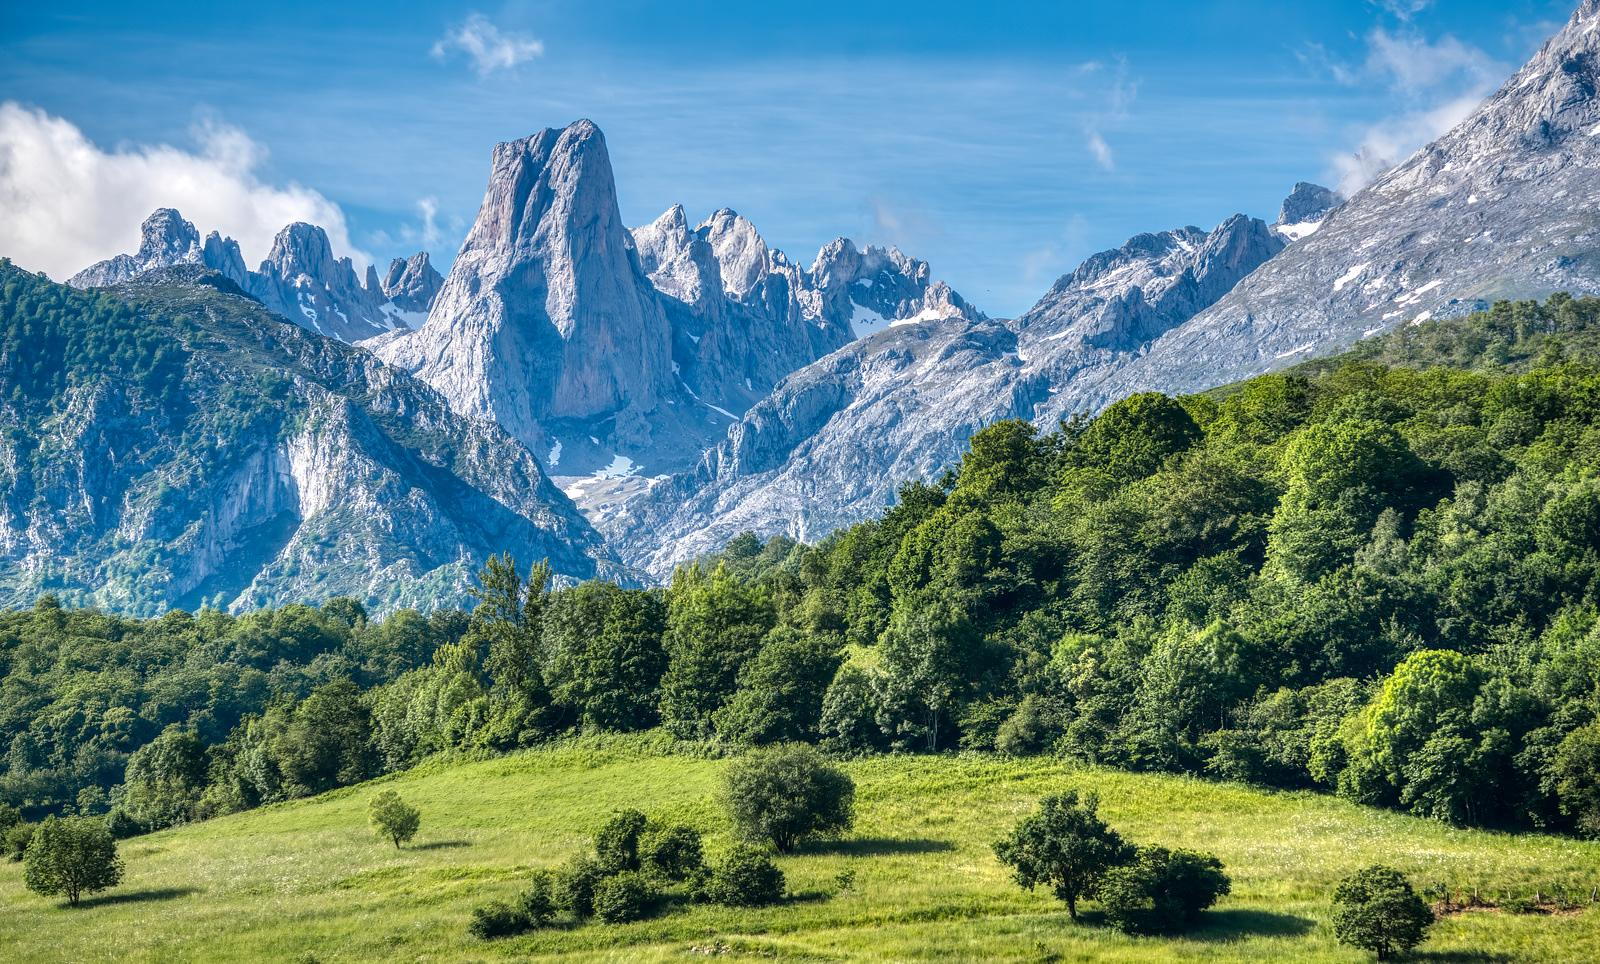 Naranjo de Bulnes peak in the Picos de Europa mountains, Spain